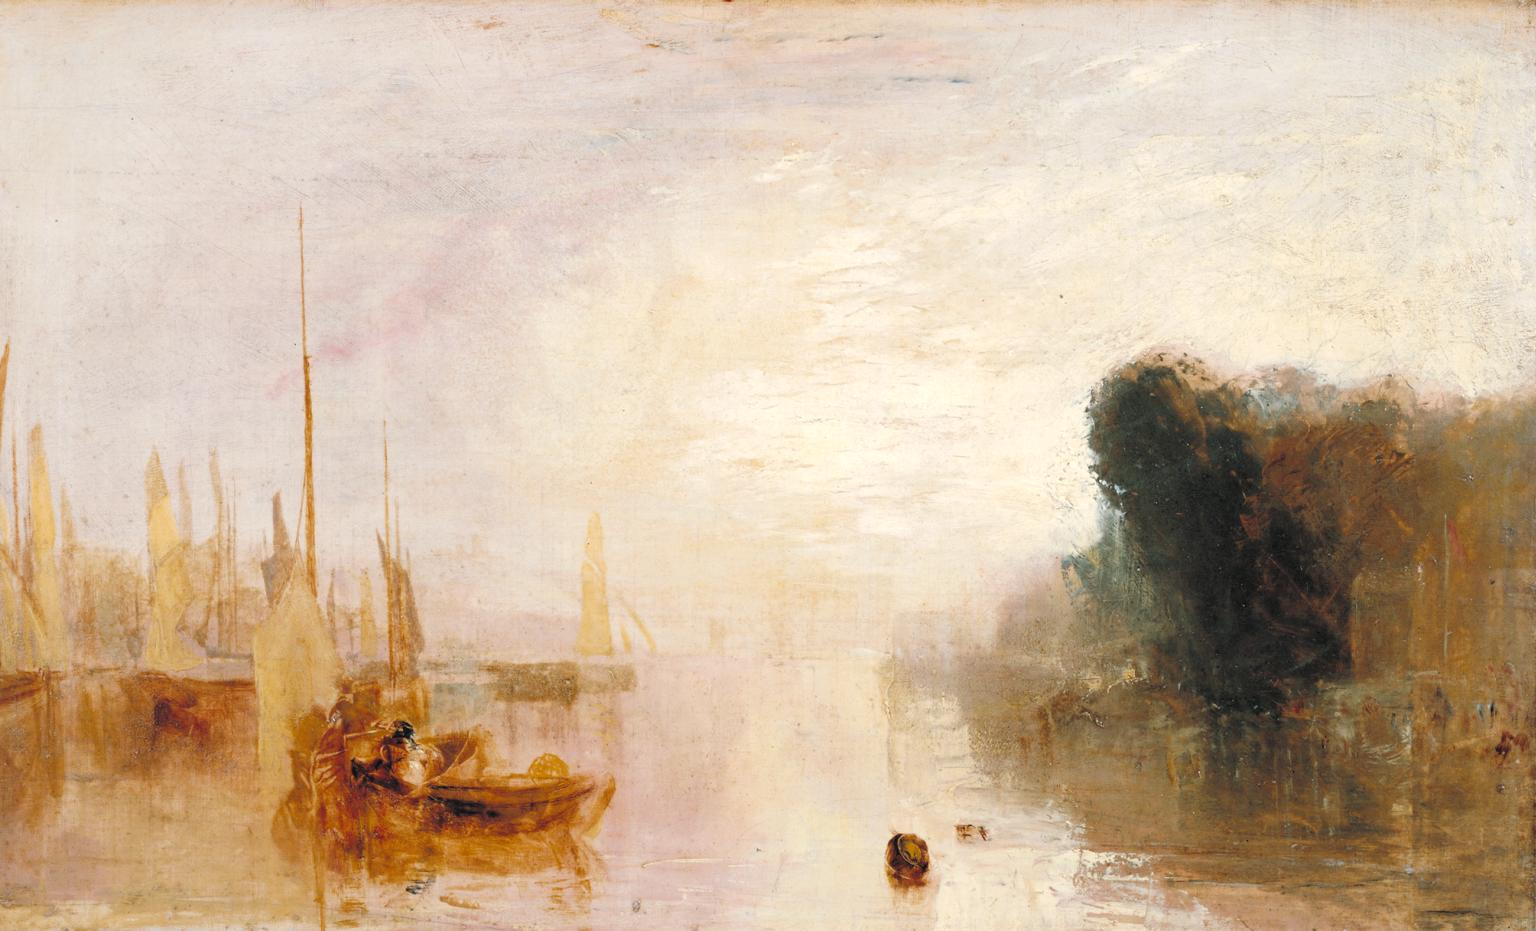 Sketch for 'East Cowes Castle, the Regatta Starting for Their Moorings' No. 2 1827 by Joseph Mallord William Turner 1775-1851